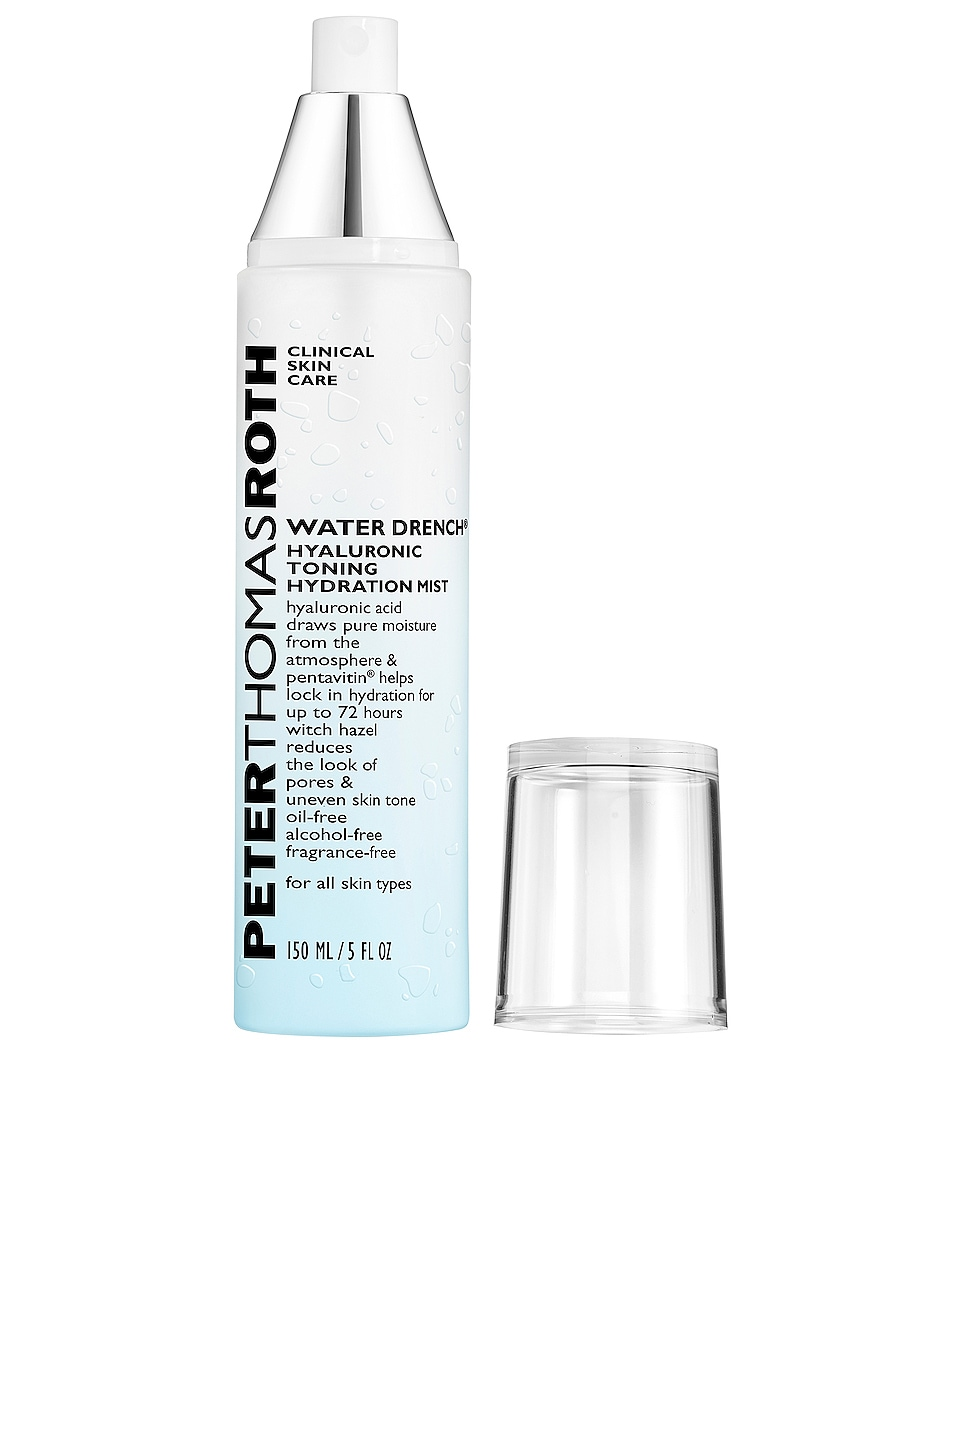 Peter Thomas Roth Water Drench Hyaluronic Cloud Toner Mist